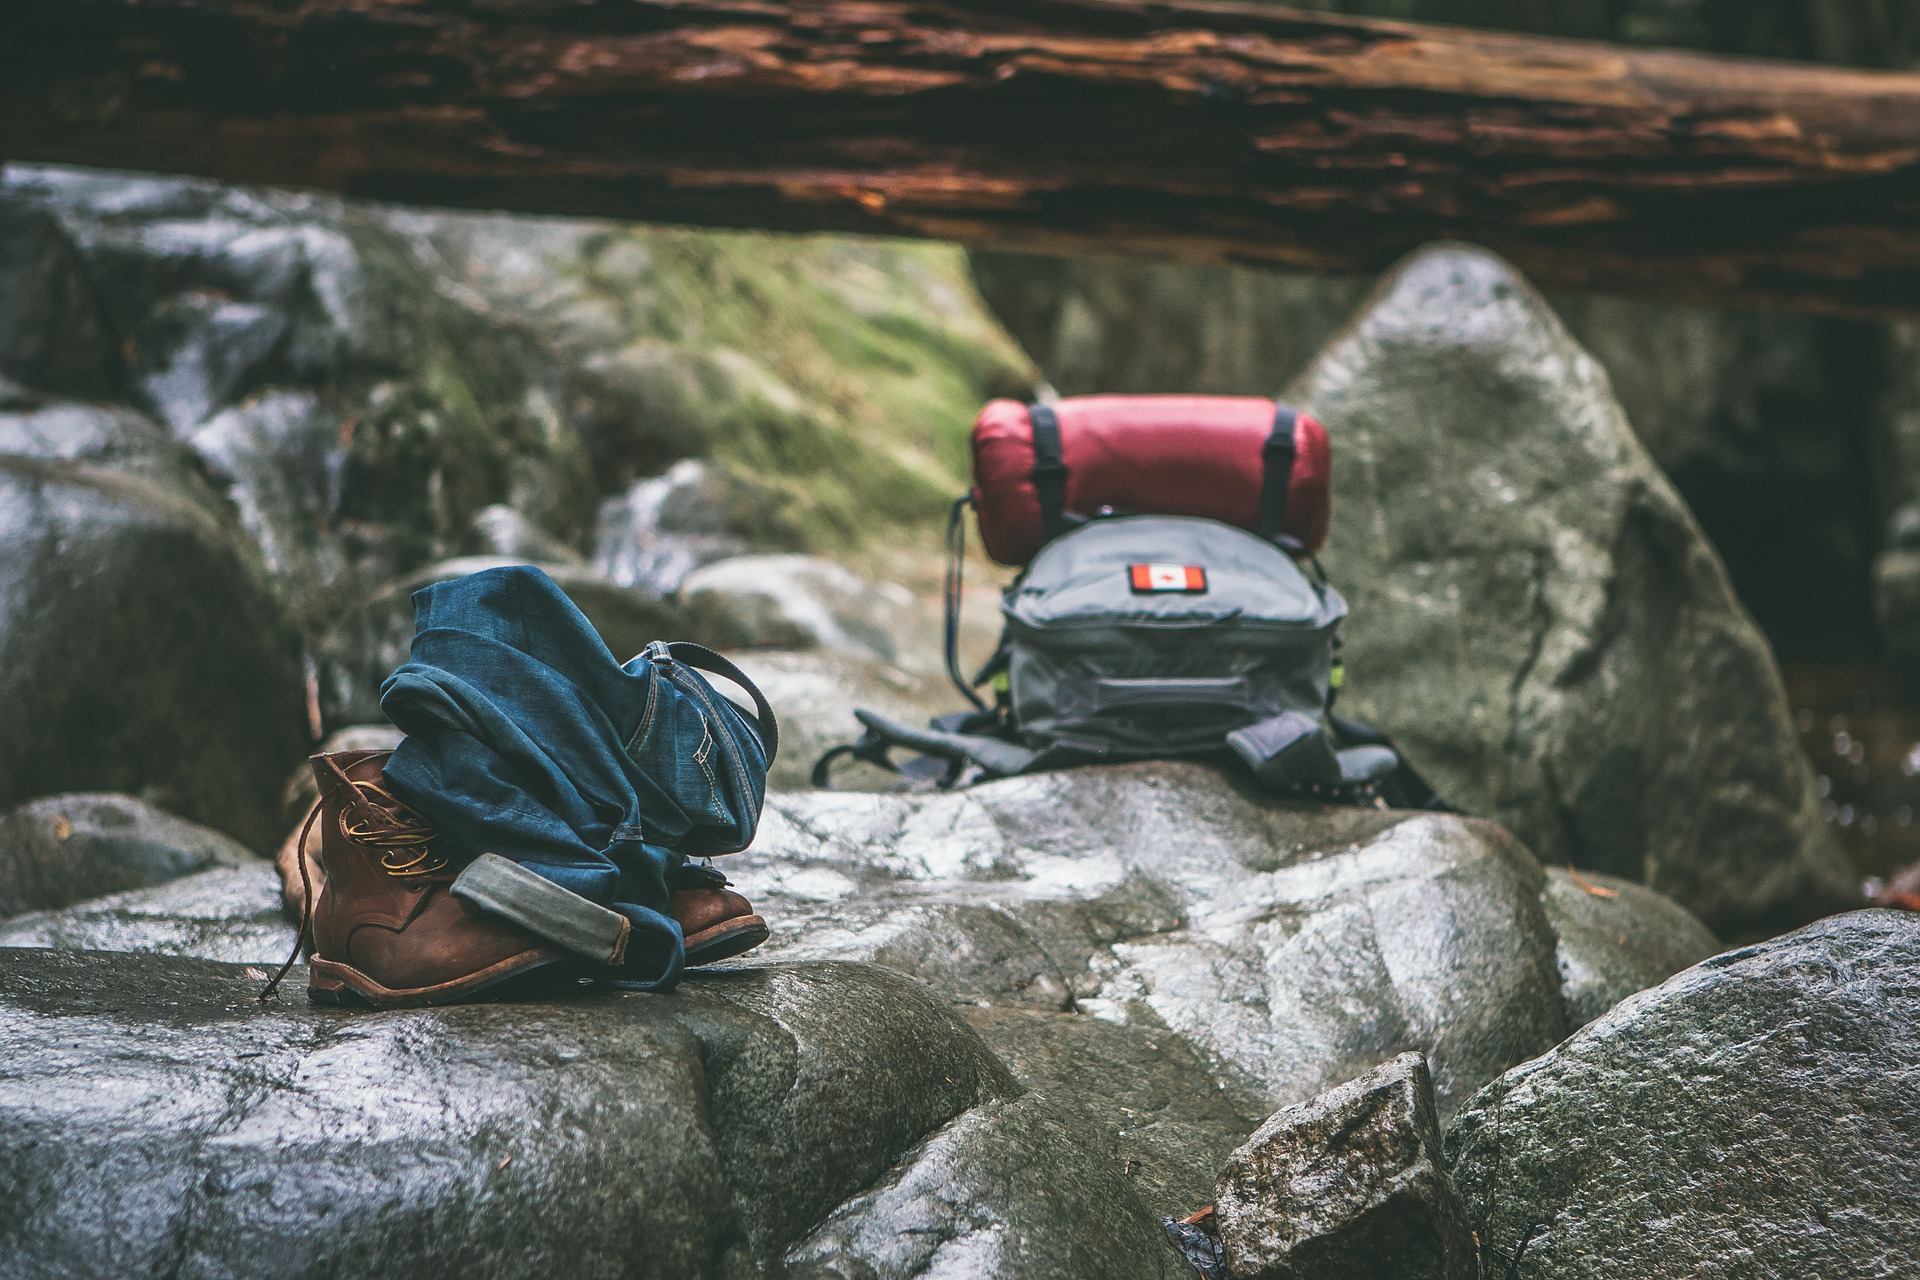 Backpacking gear by a river.